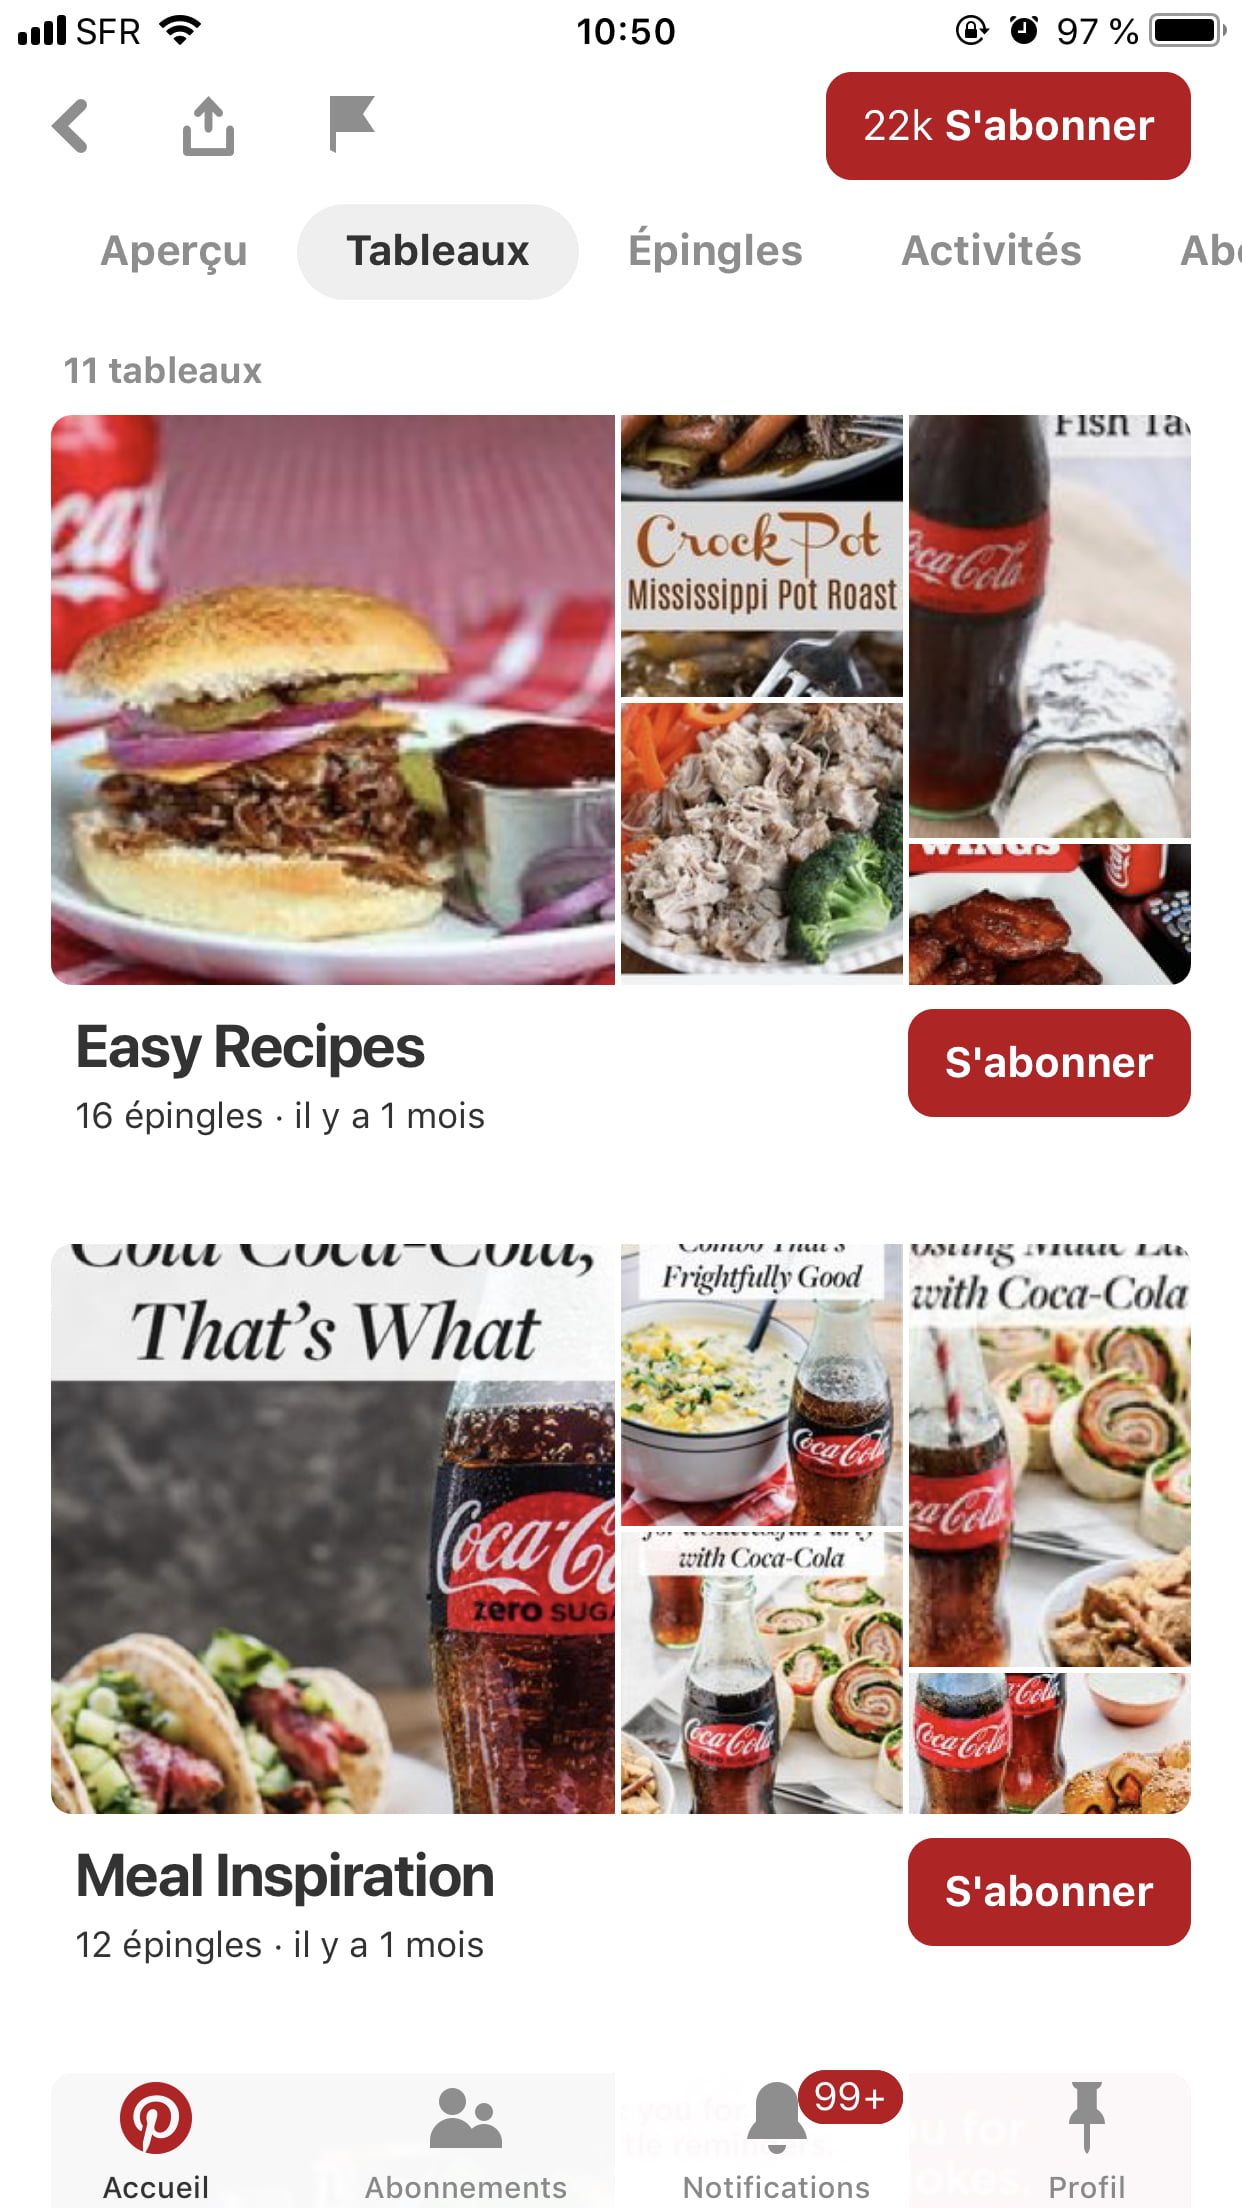 Interface du compte officiel Pinterest de Coca-Cola